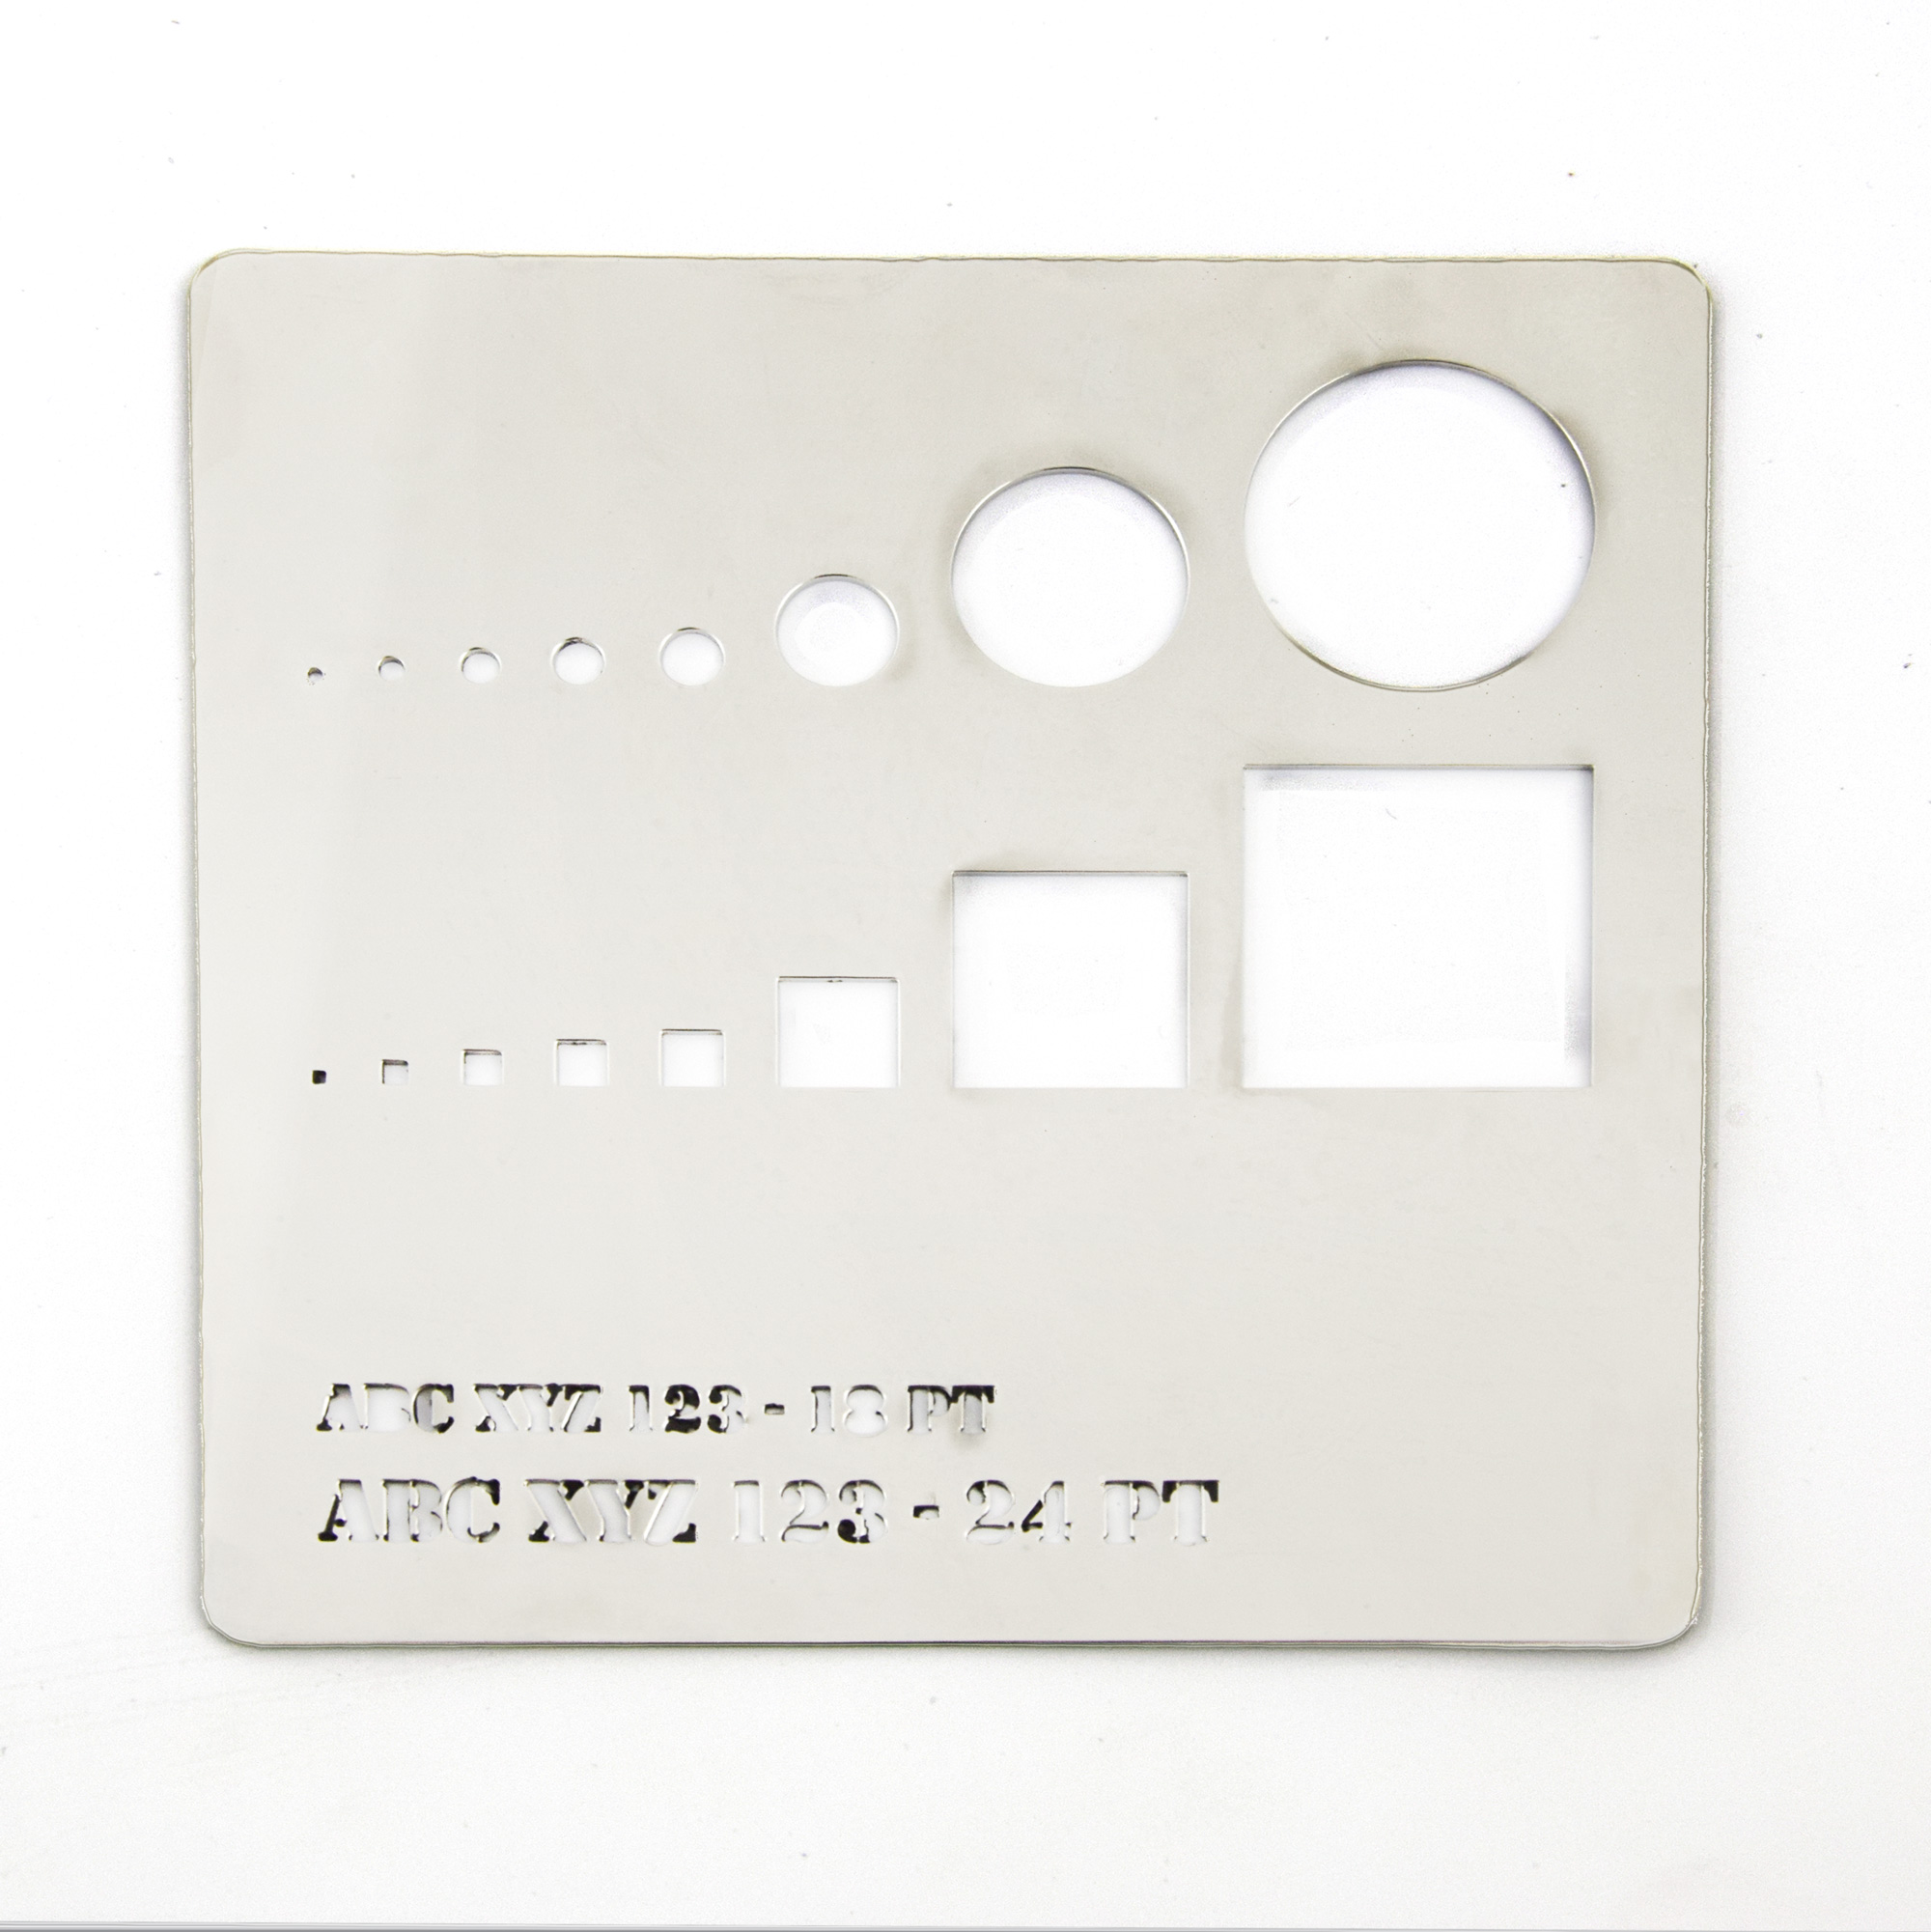 Mirror finish stainless steel - cutting test